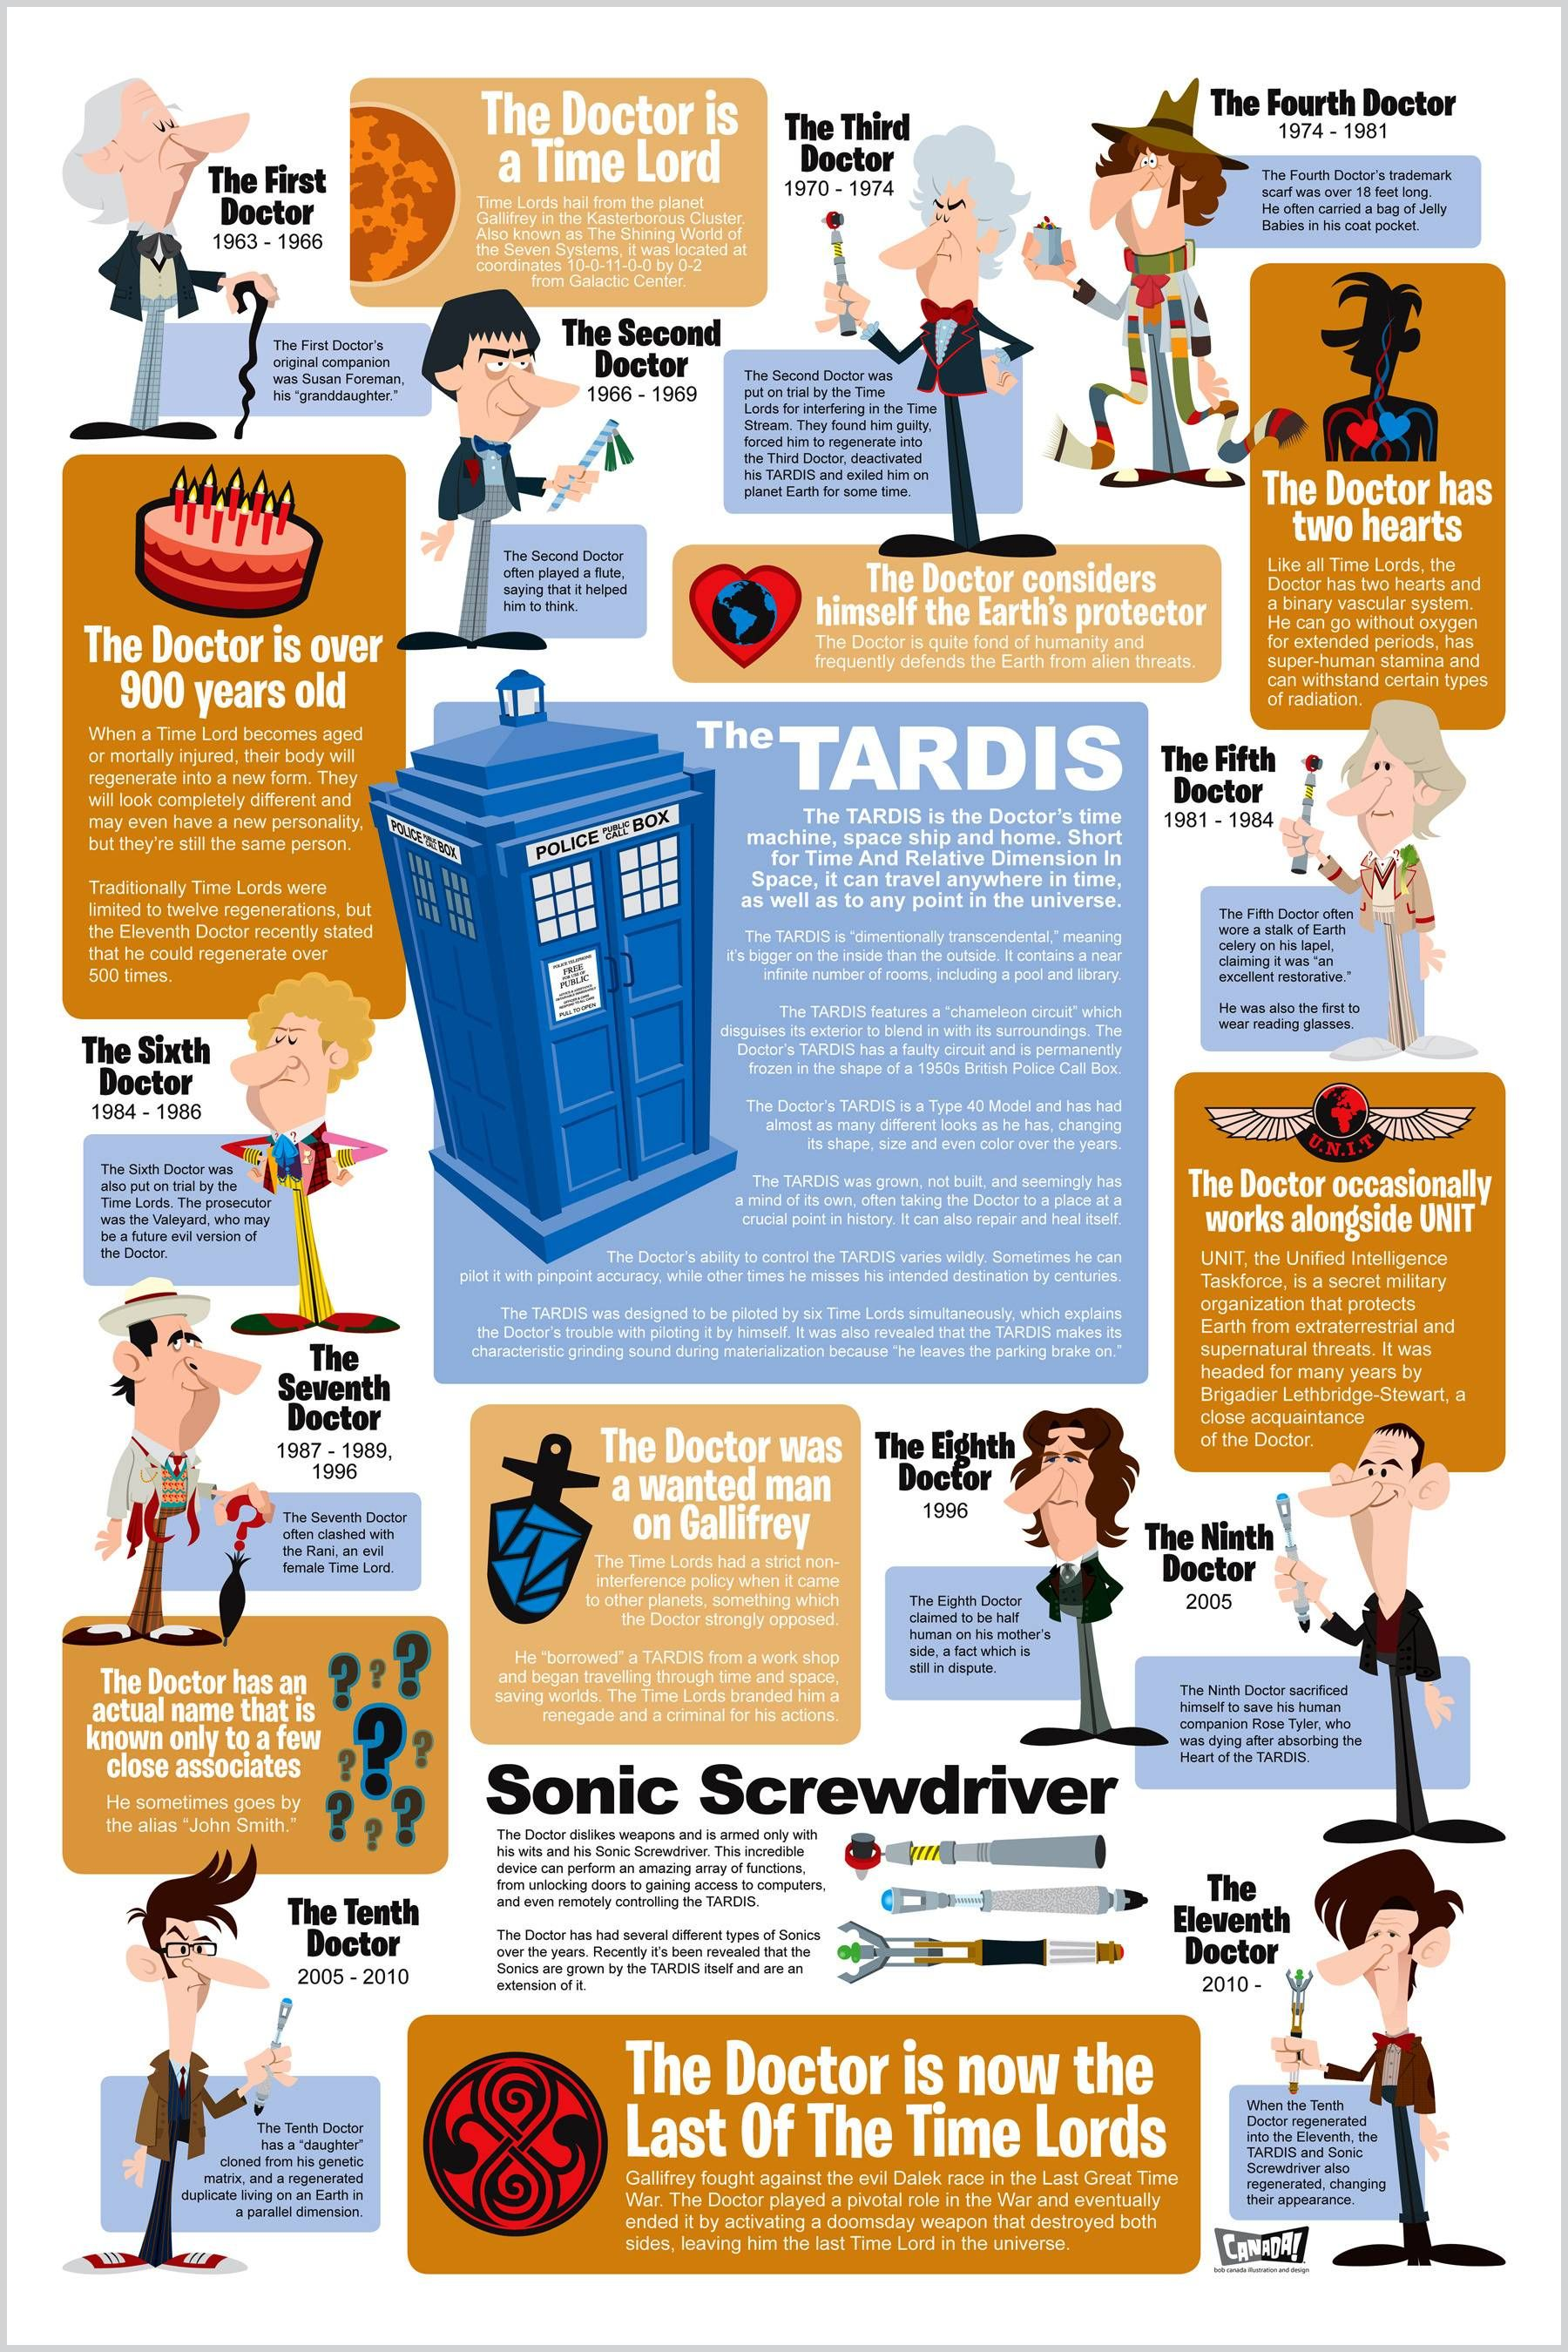 An introduction to Doctor Who